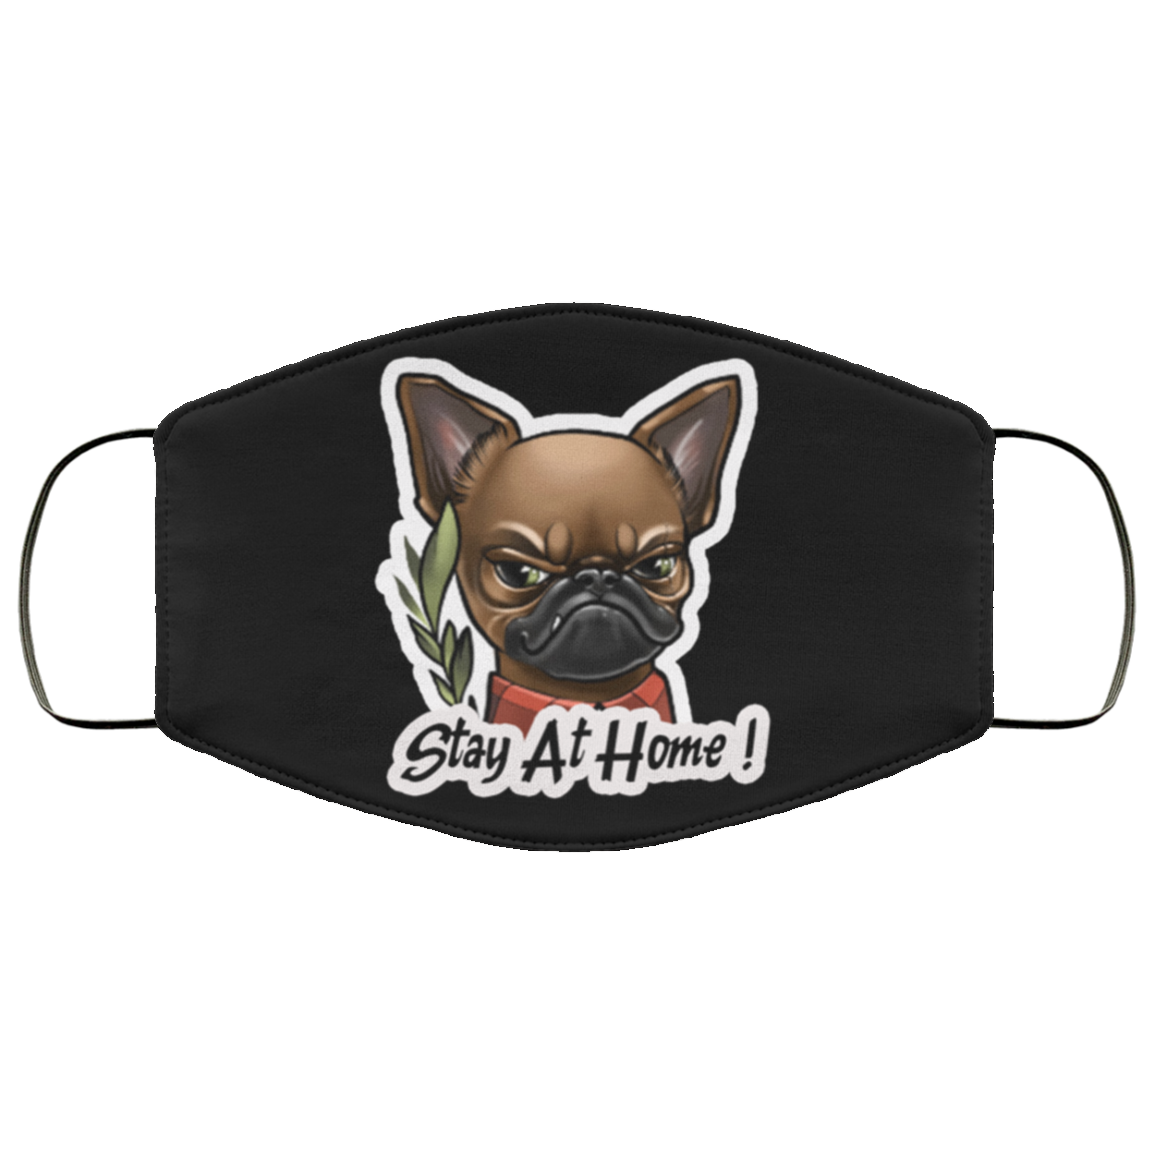 Stay at home - Fashion Face Mask - Frenchie Bulldog Shop